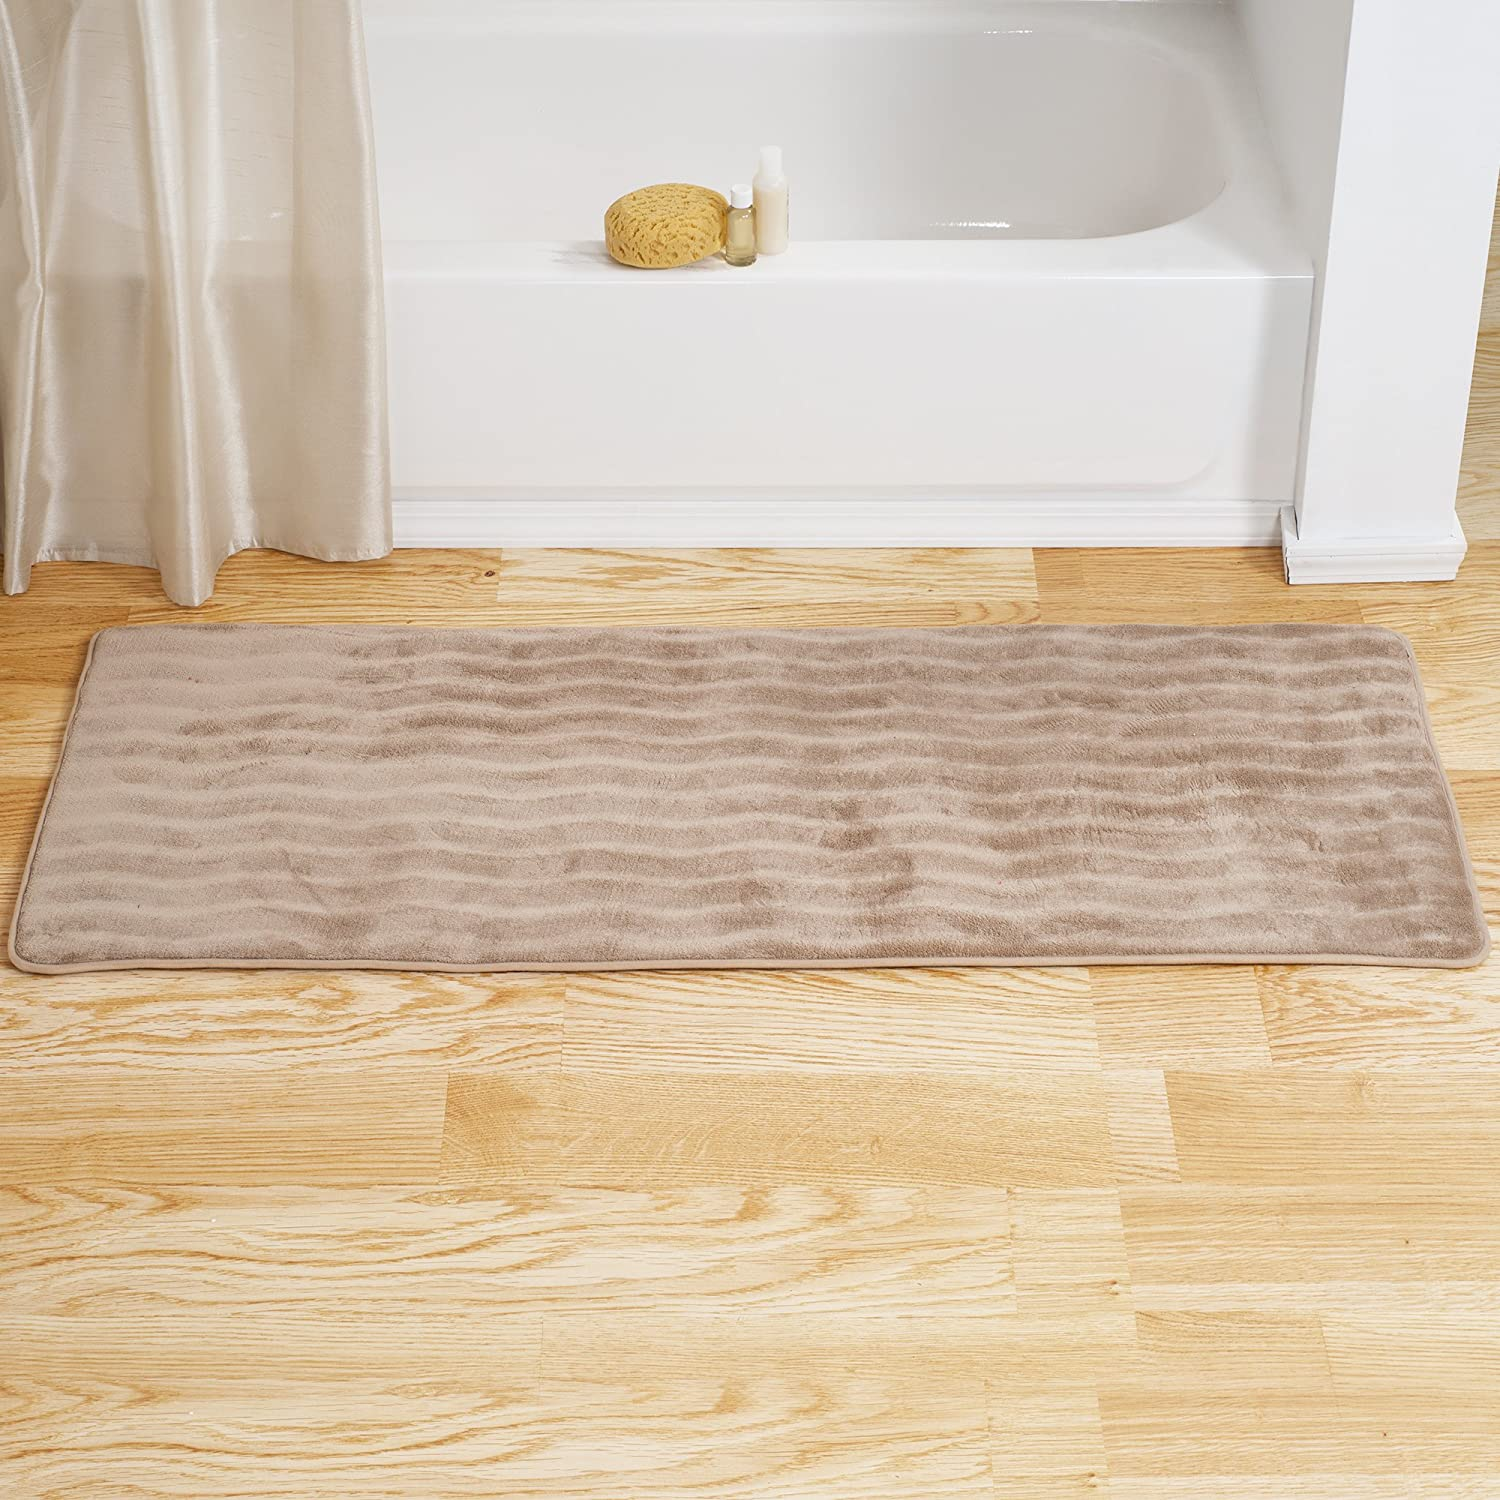 Long rugs for bathroom is water resistant and waterproof the same thing?